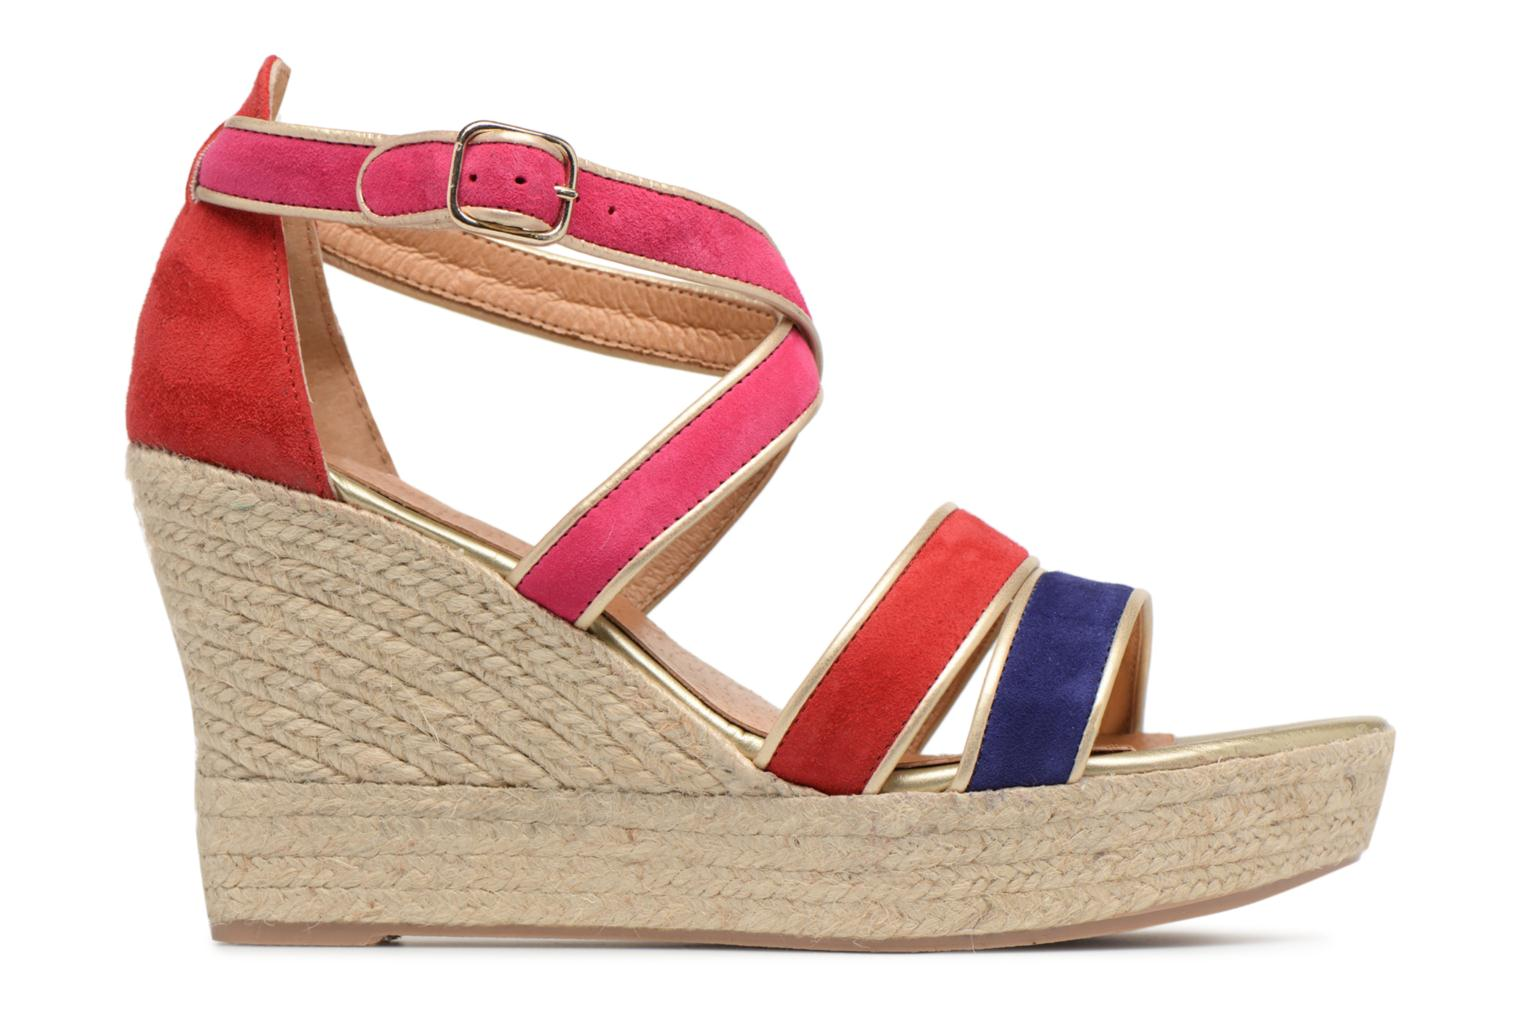 Marques Chaussure femme Made by SARENZA femme Bombays Babes Espadrilles #3 Cuir Velours Multico